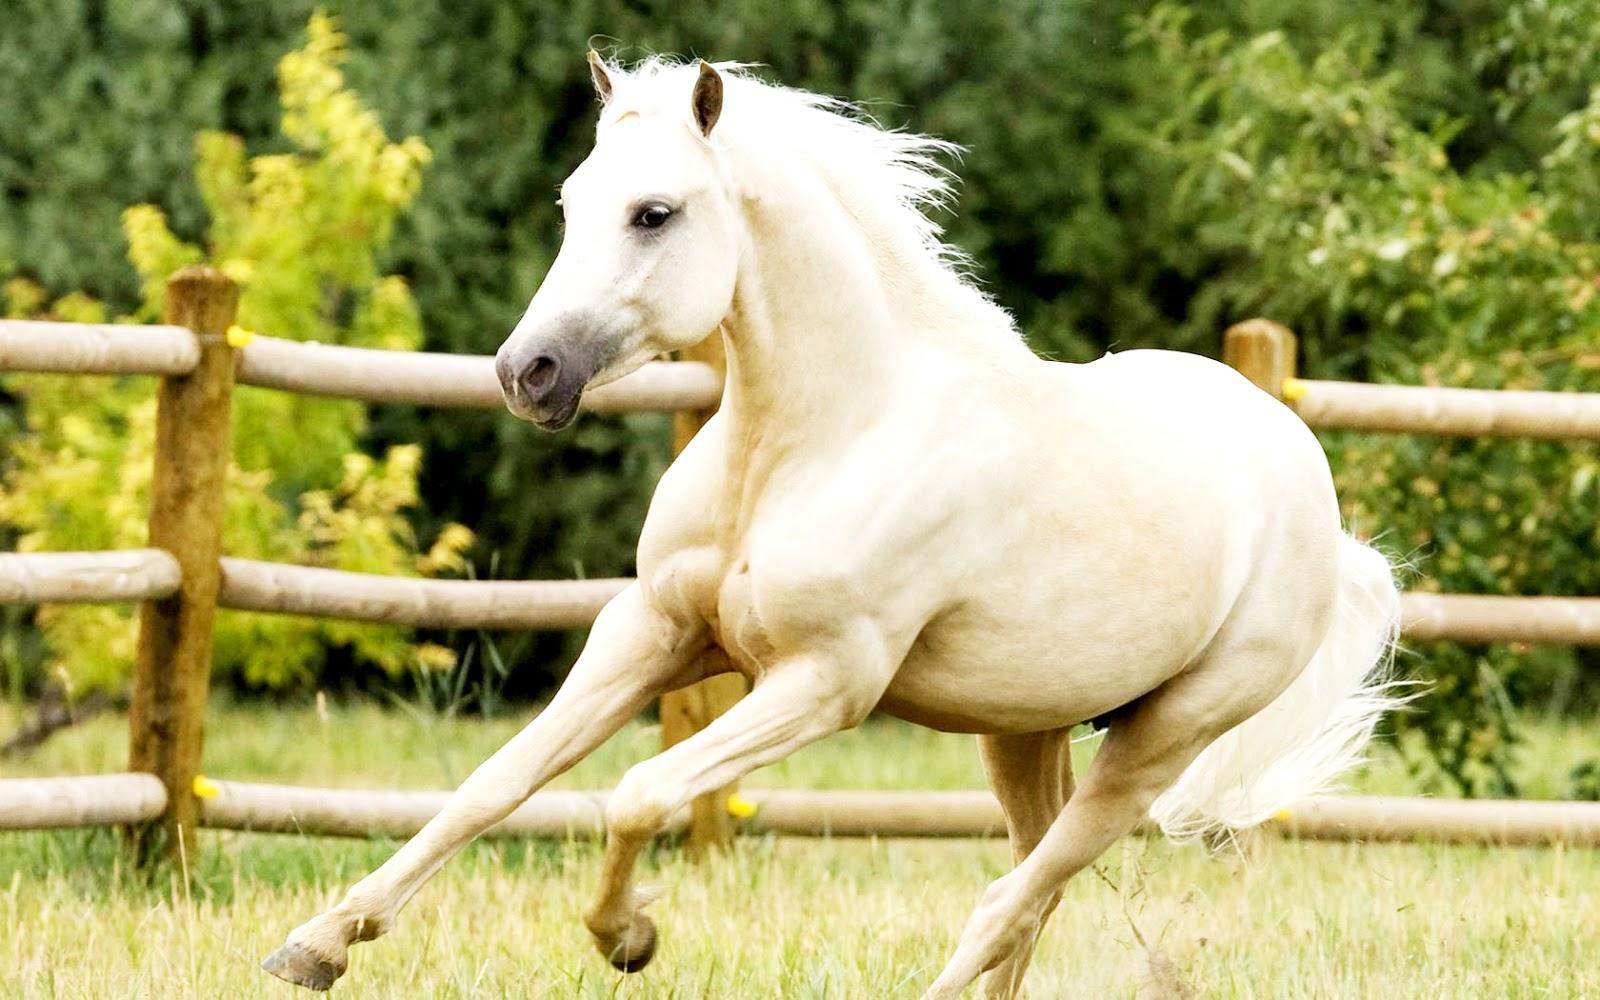 White running horses - photo#51